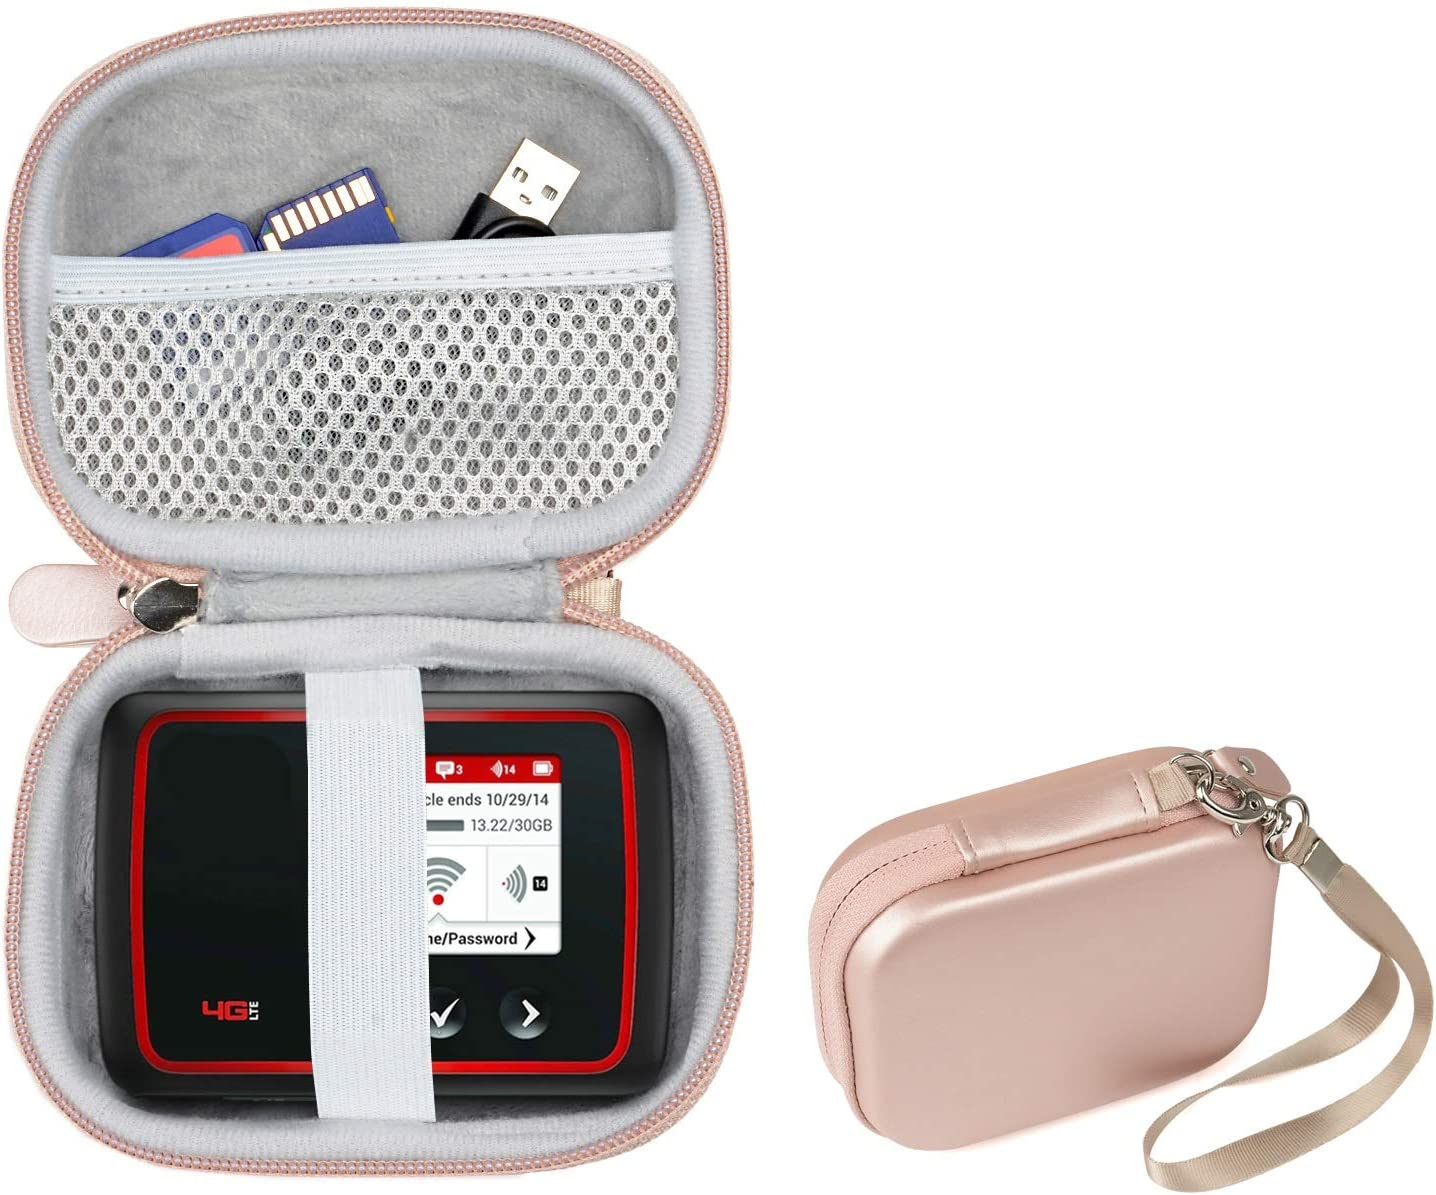 CaseSack Protective Case for Verizon MiFi 6620L Jetpack 4G LTE Mobile Hotspot, Mesh Pocket for Cable, USB and Other Accessories, Detachable Wrist Strap (Rose Gold)